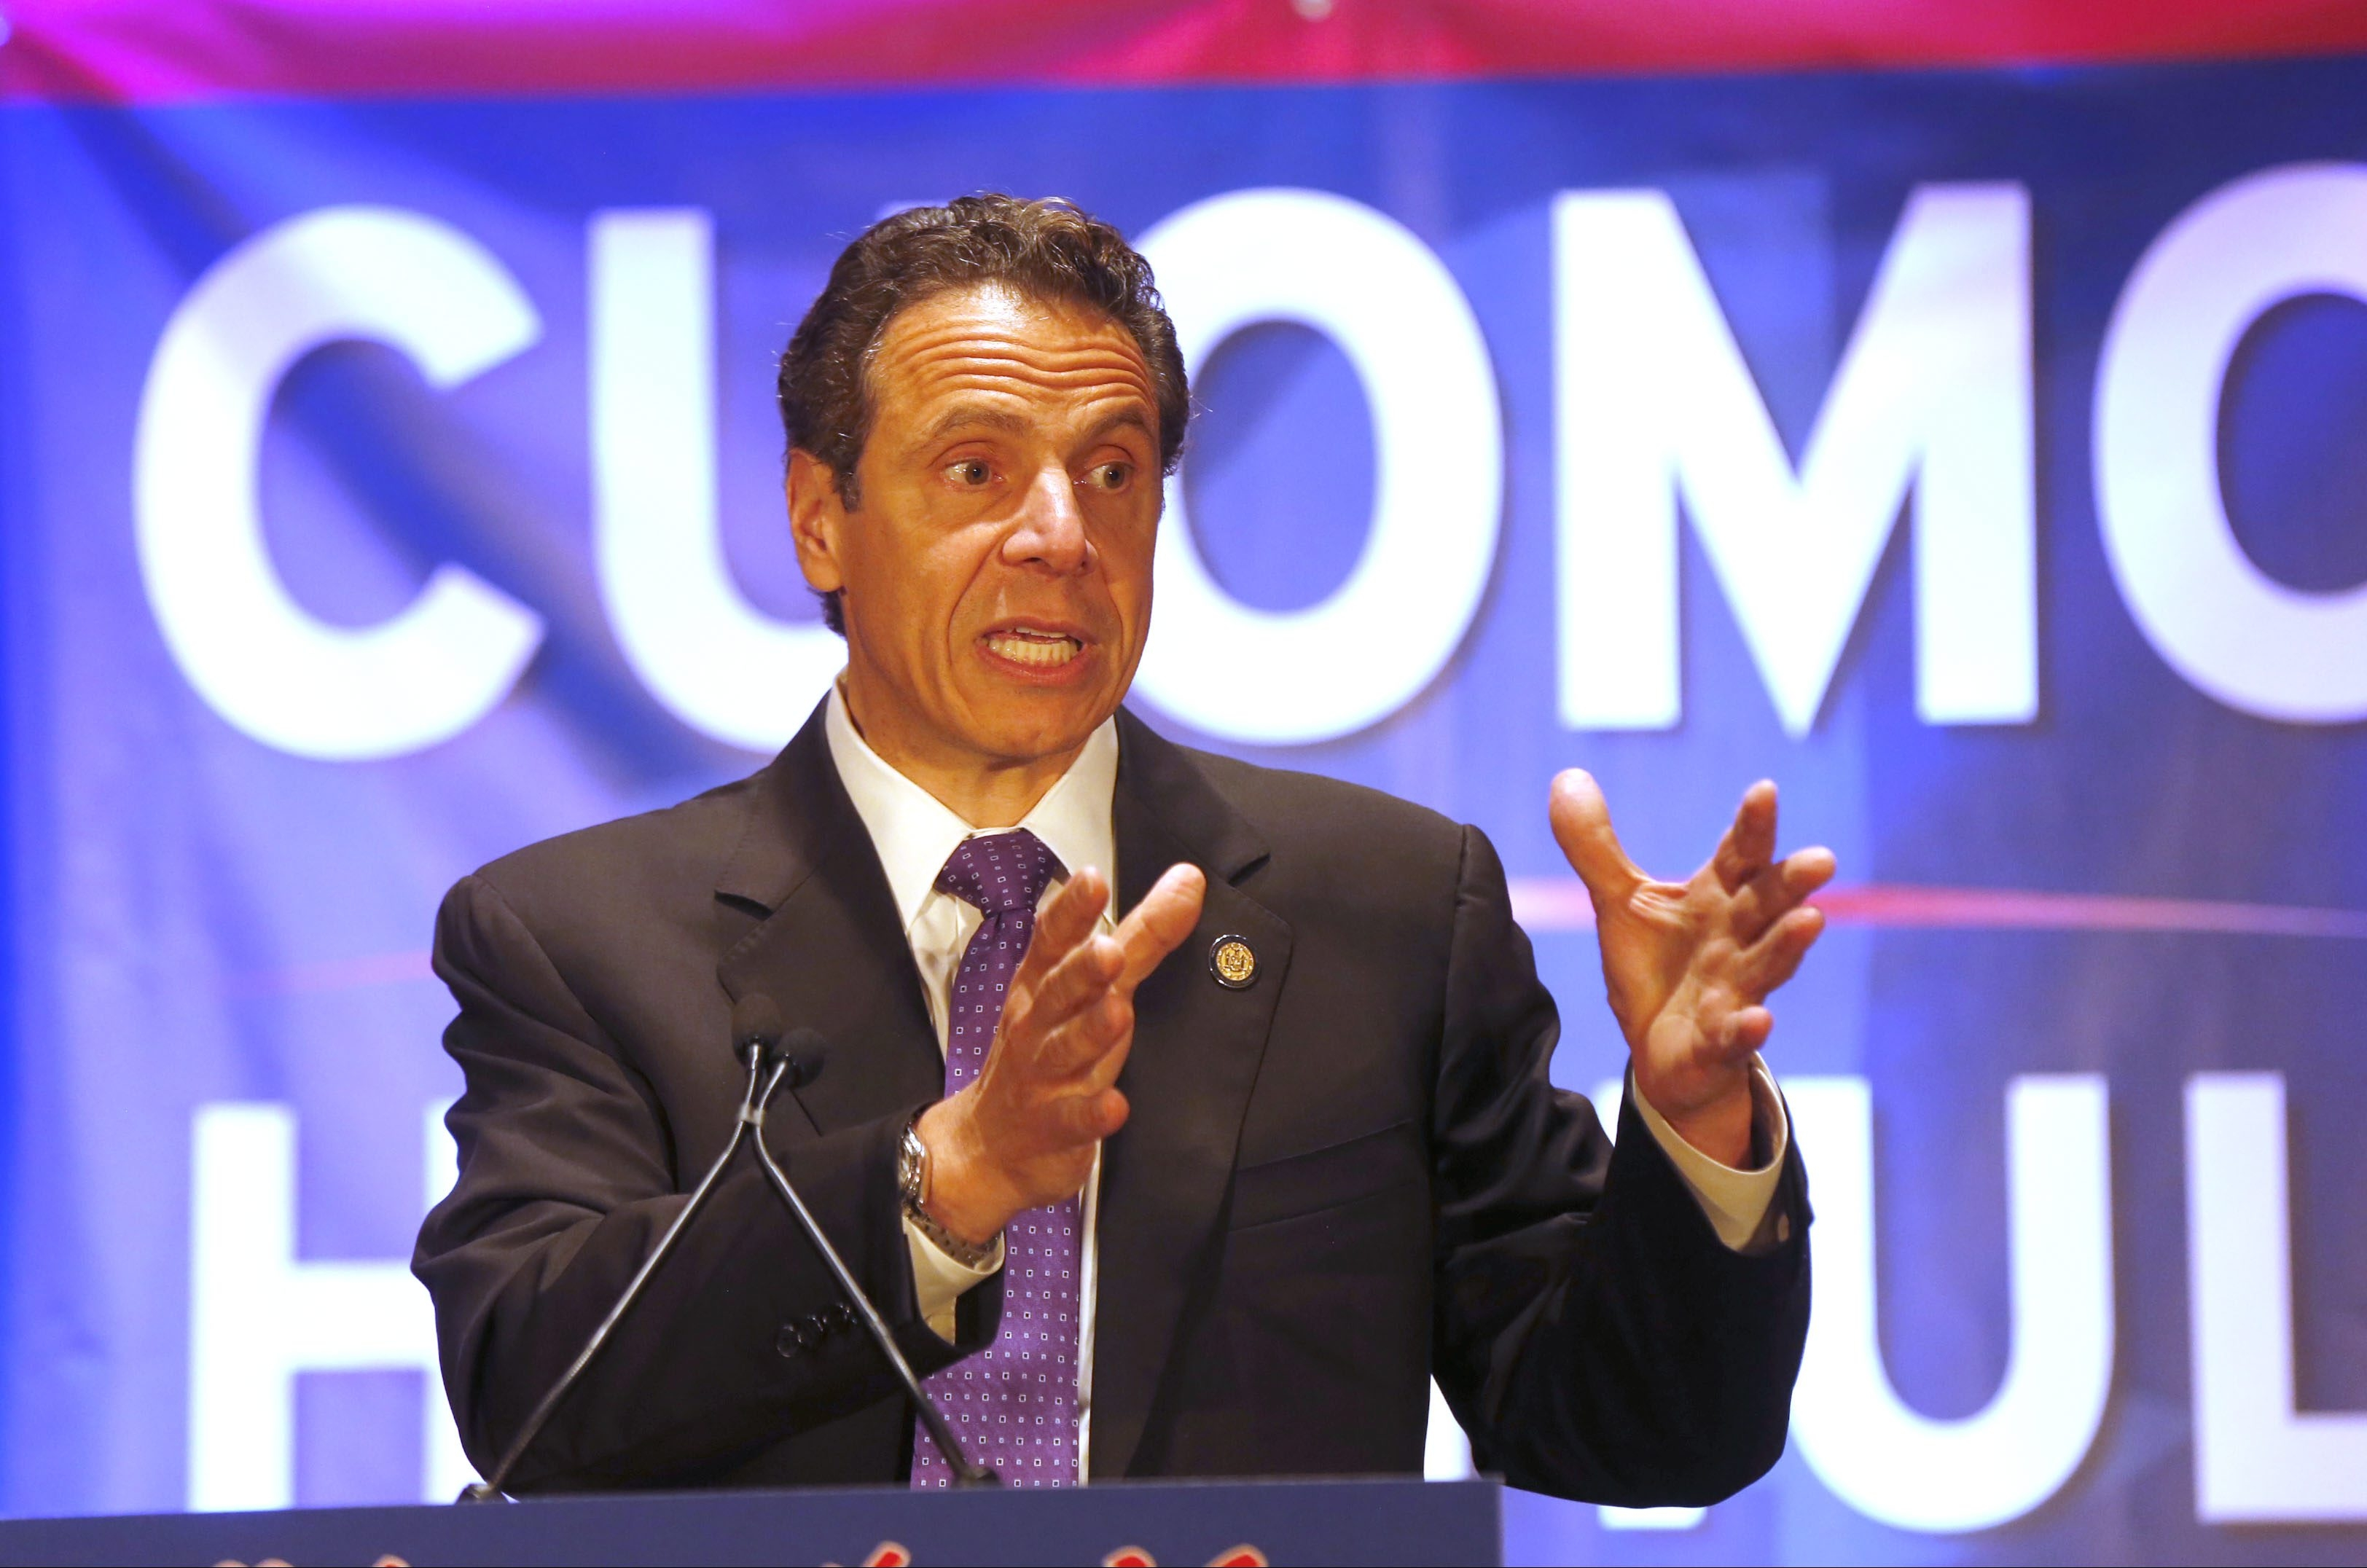 Gov. Andrew M. Cuomo, seen here thanking supporters Sept. 10 in Buffalo's convention center, has not endorsed incumbent state Sen. Mark Grisanti, a Republican who backed controversial Cuomo legislation, or Grisanti's Democratic challenger, Marc Panepinto.